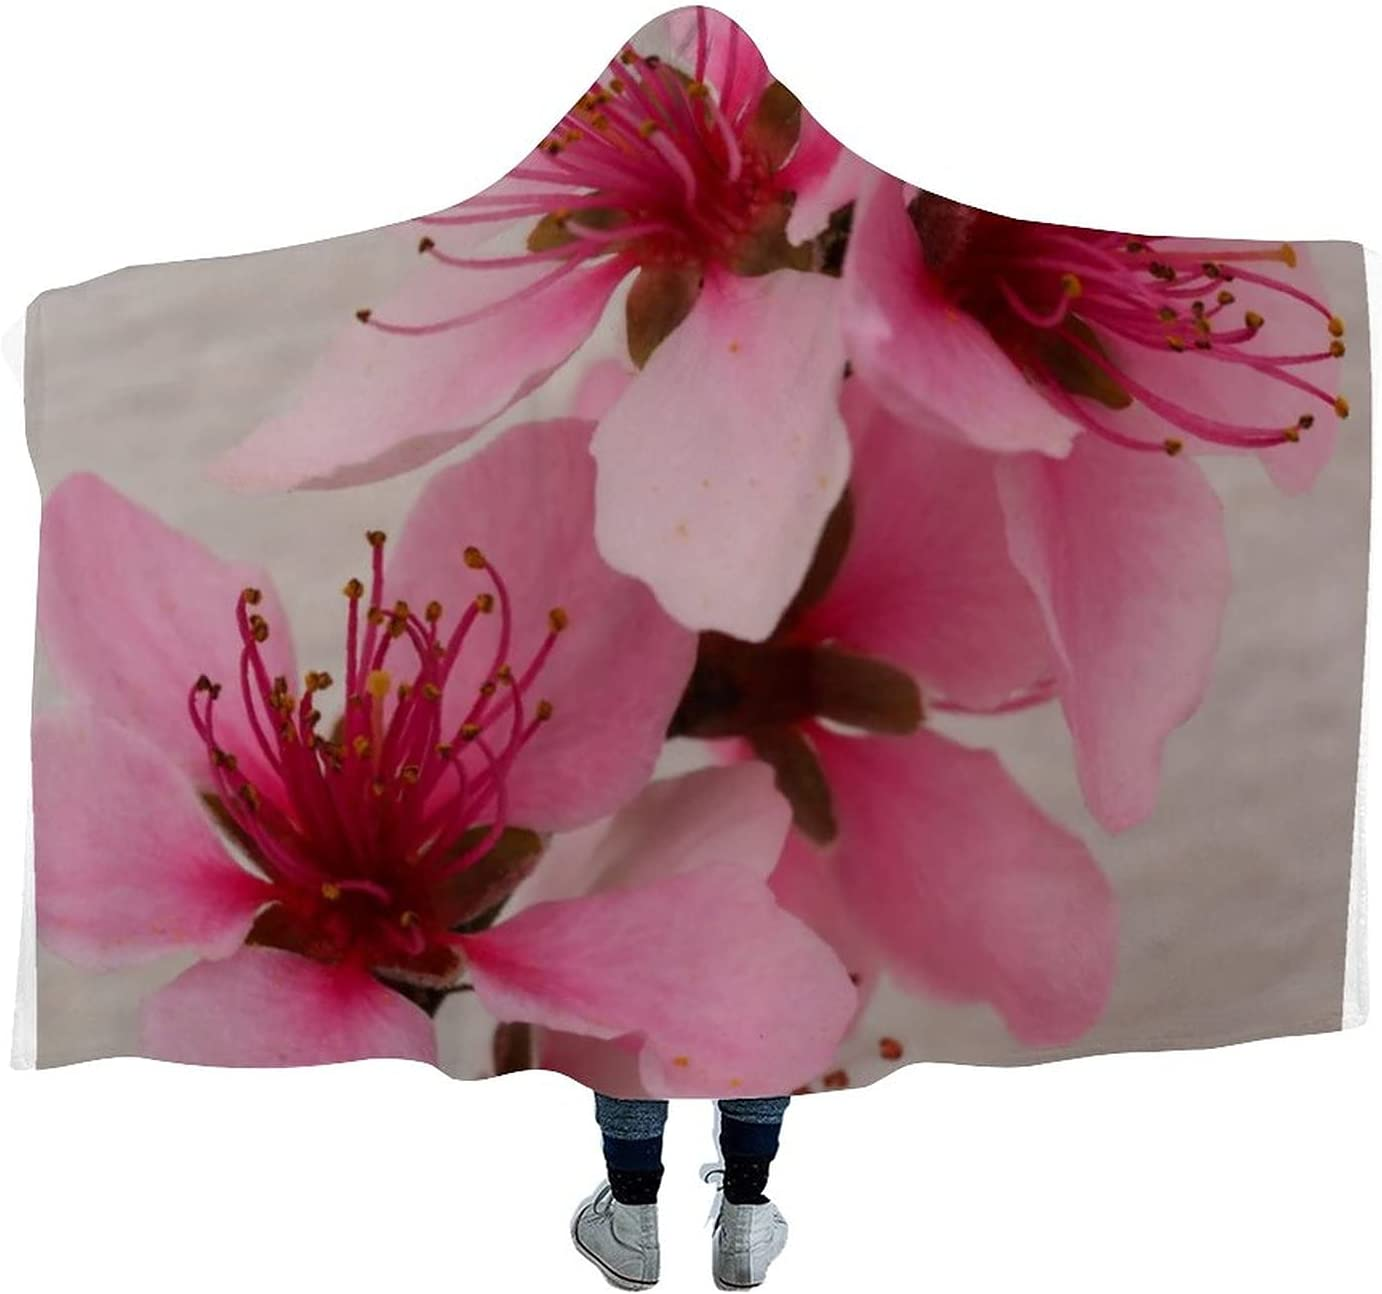 Beautiful Peach Blossom 4 years warranty Super beauty product restock quality top! Cushion Microfib Blanket Wearable Hooded